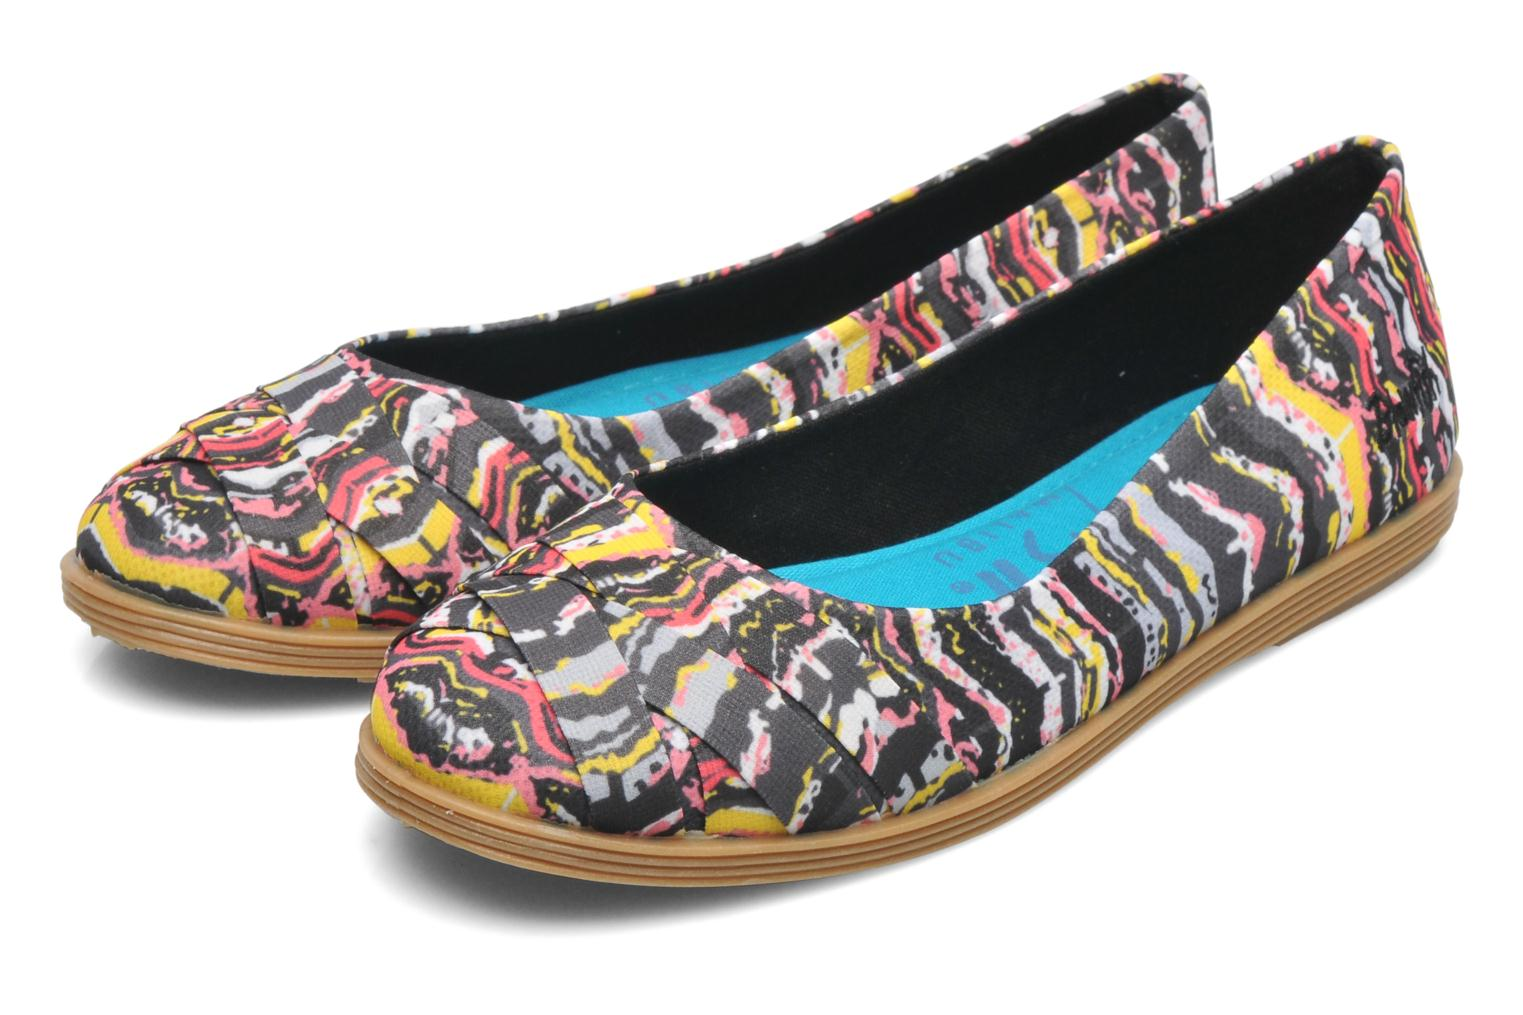 Ballerine Blowfish Glo Multicolore immagine 3/4